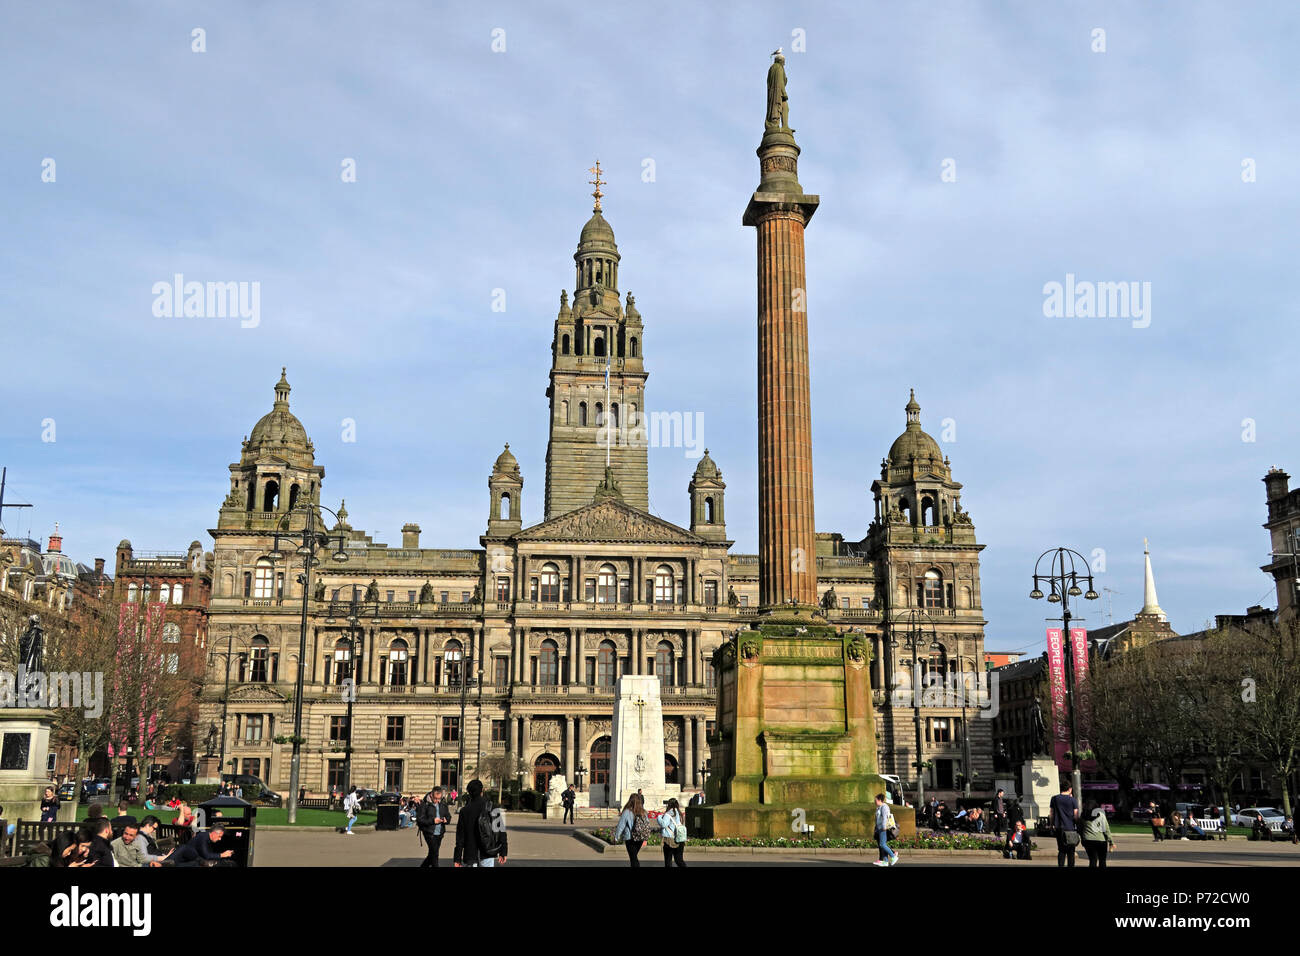 HotpixUK,GoTonySmith,UK,local government body local government,Glasgow,G2 1DU,Glasgow Corporation,Corporation,local authority,Glasgow District Council,Strathclyde,Glasgow City Council,George Square,George Sq,gothic,building,architecture,listed,Beaux arts style,Beaux arts,style,The Chambers